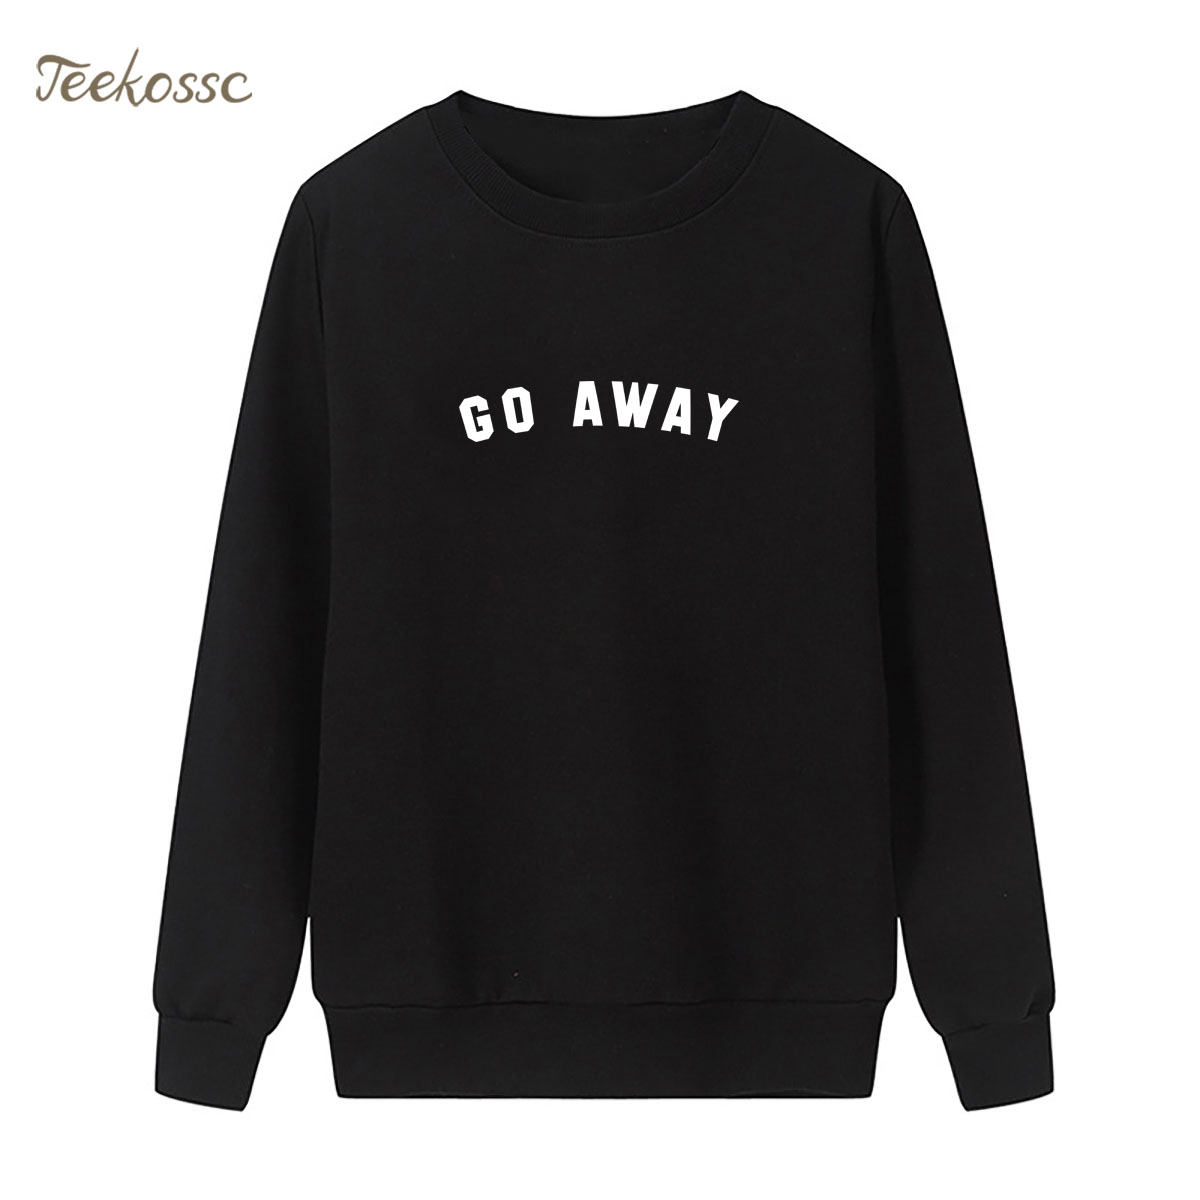 Go Away Sweatshirt Print Hoodie New Brand Winter Autumn Women Lasdies Pullover Loose Fleece Streetwear Hipster Black Sportswear